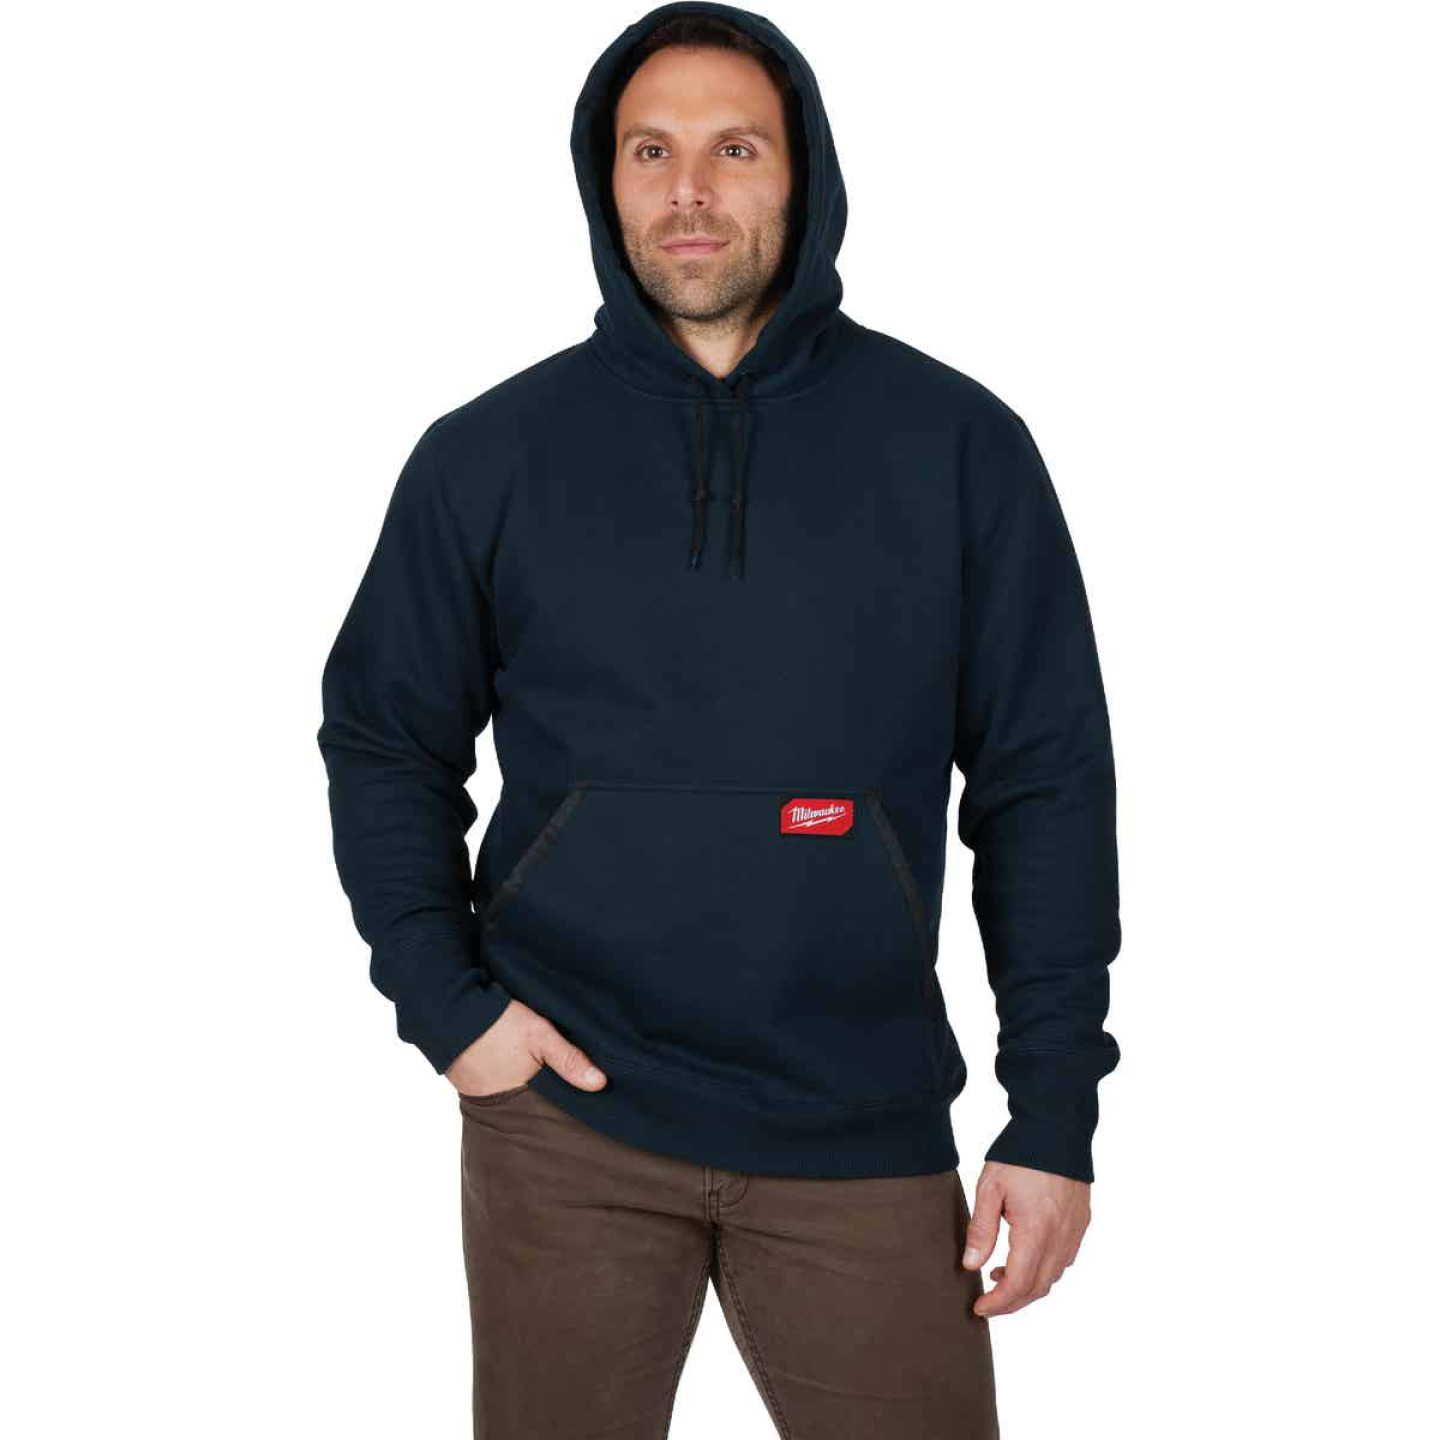 Milwaukee Small Navy Blue Heavy-Duty Pullover Hooded Sweatshirt Image 4